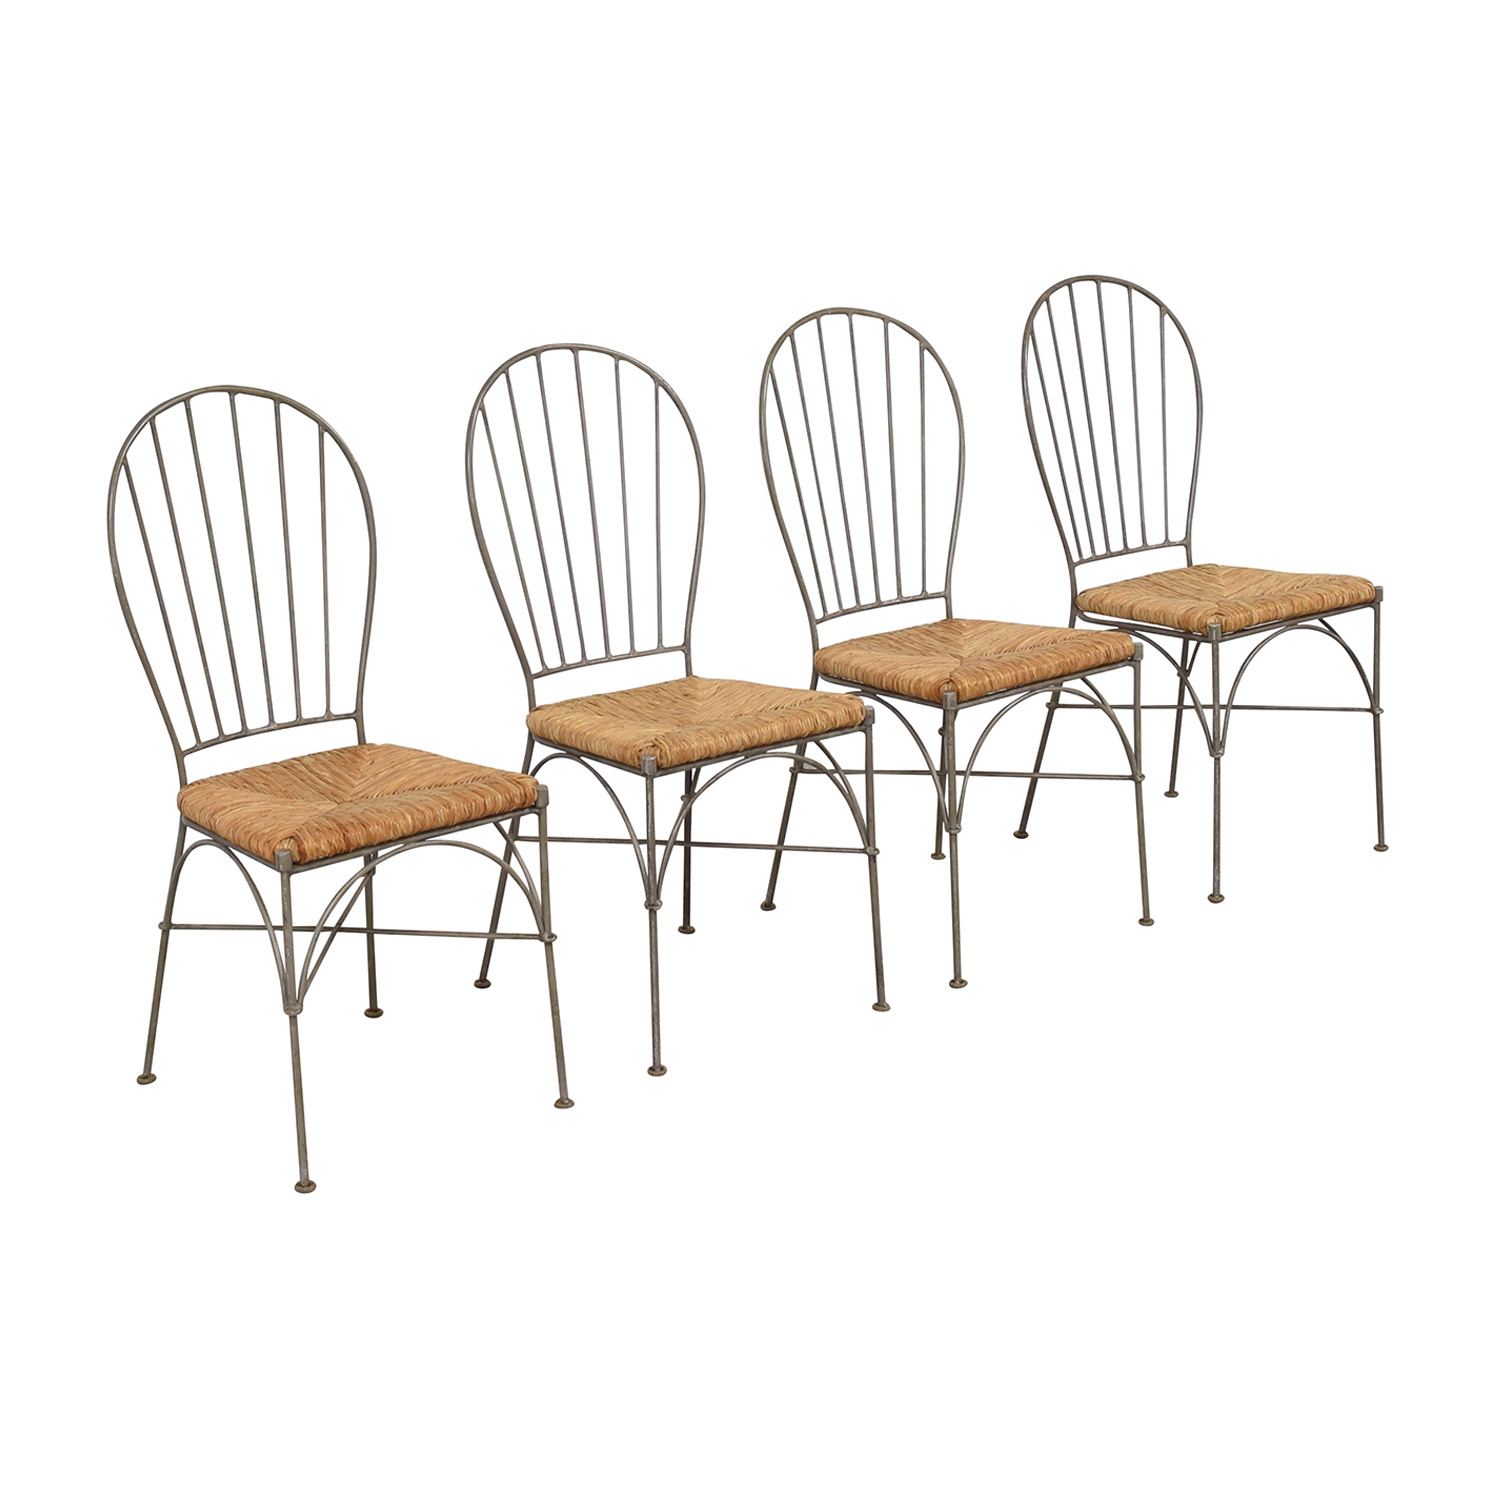 Pier 1 Pier 1 Woven Seat Dining Chairs nj